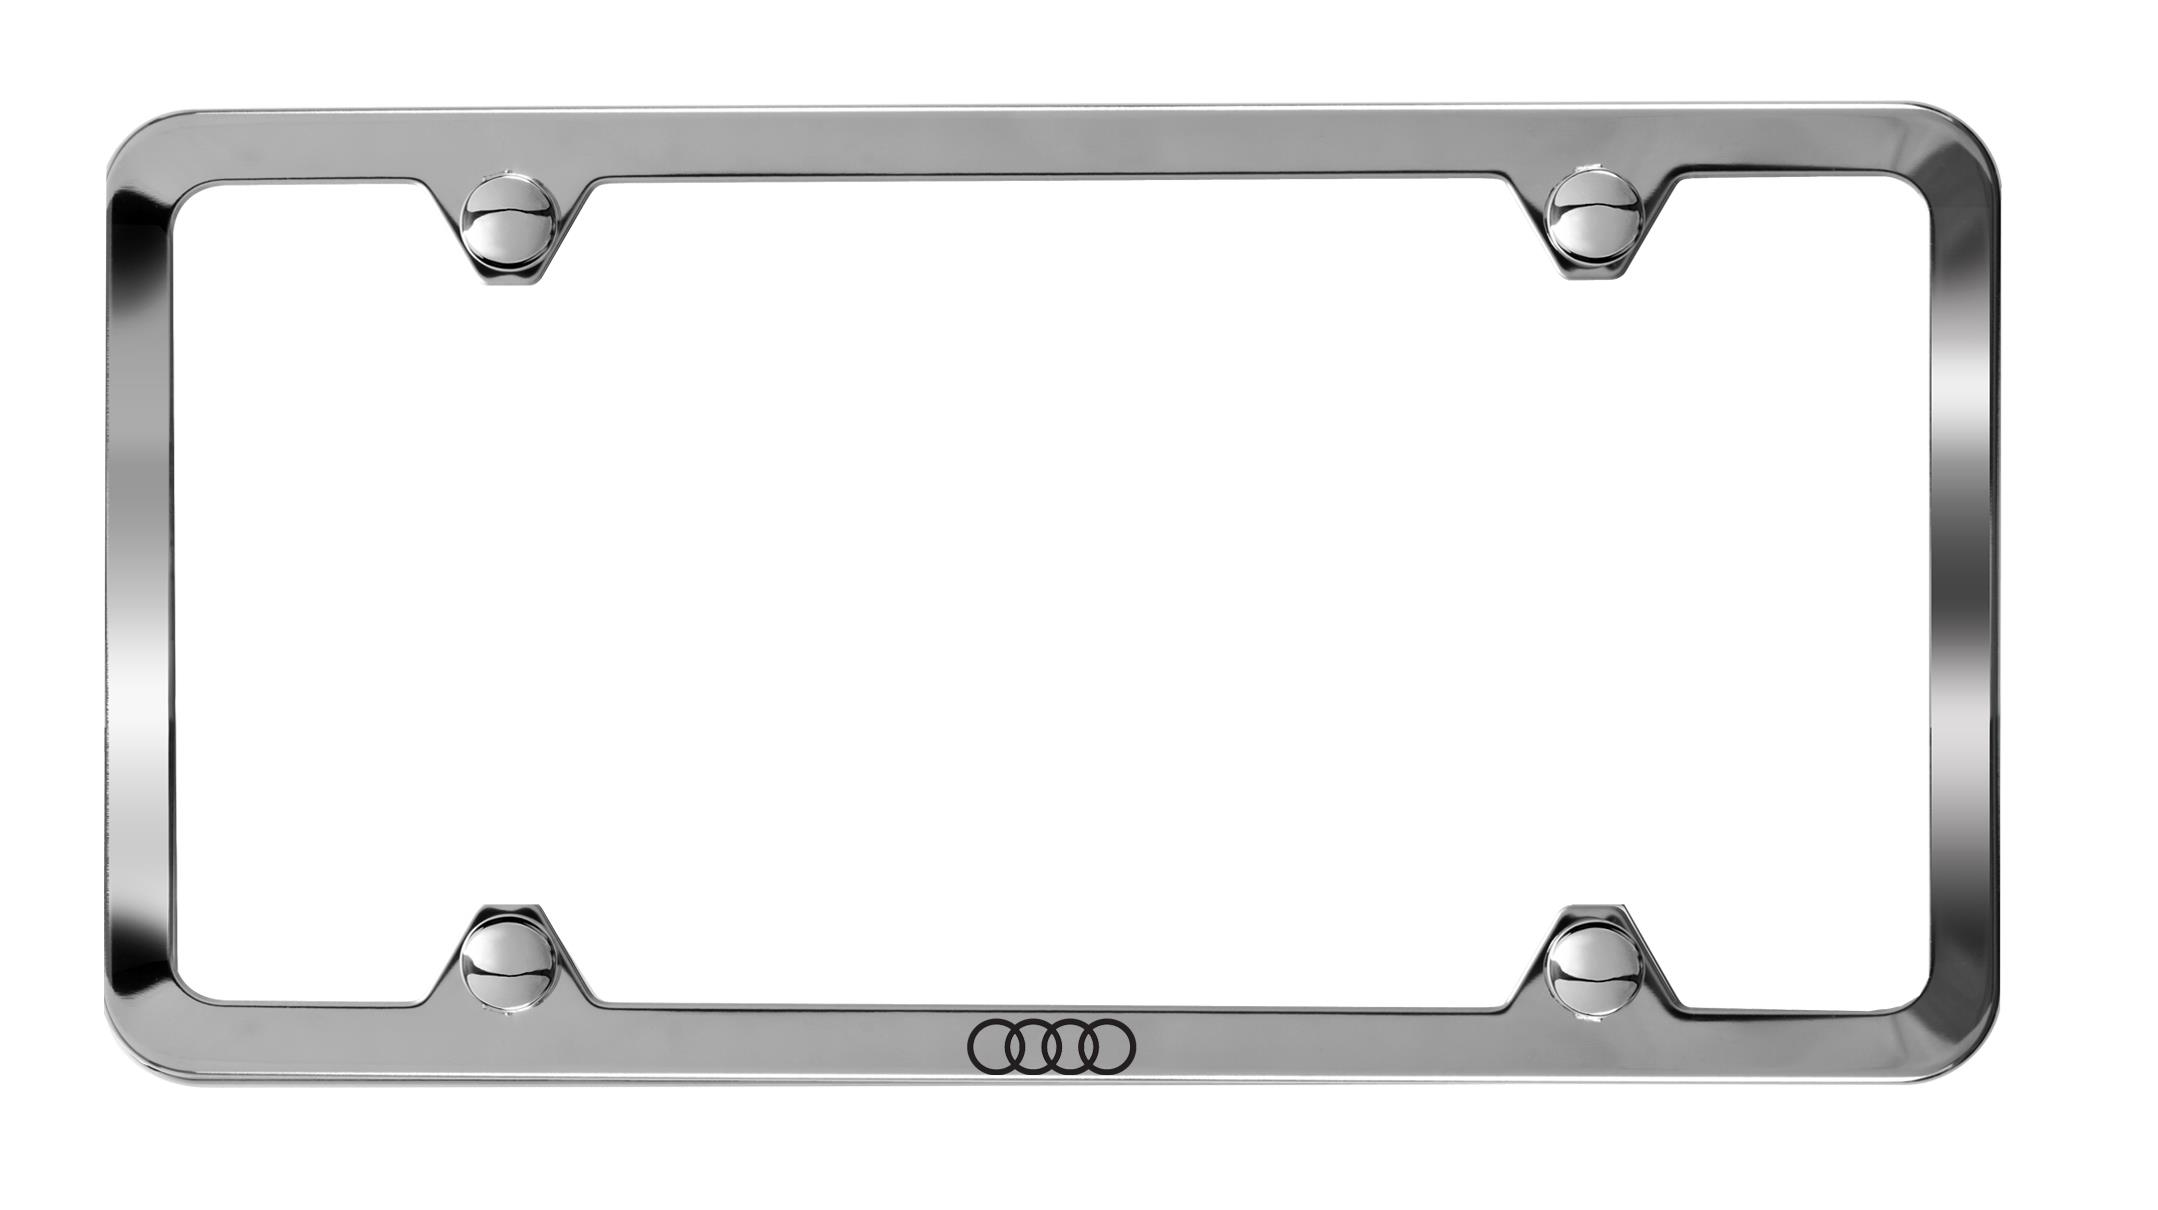 2018 Audi A5 Slimline License Plate Frame With Audi Rings